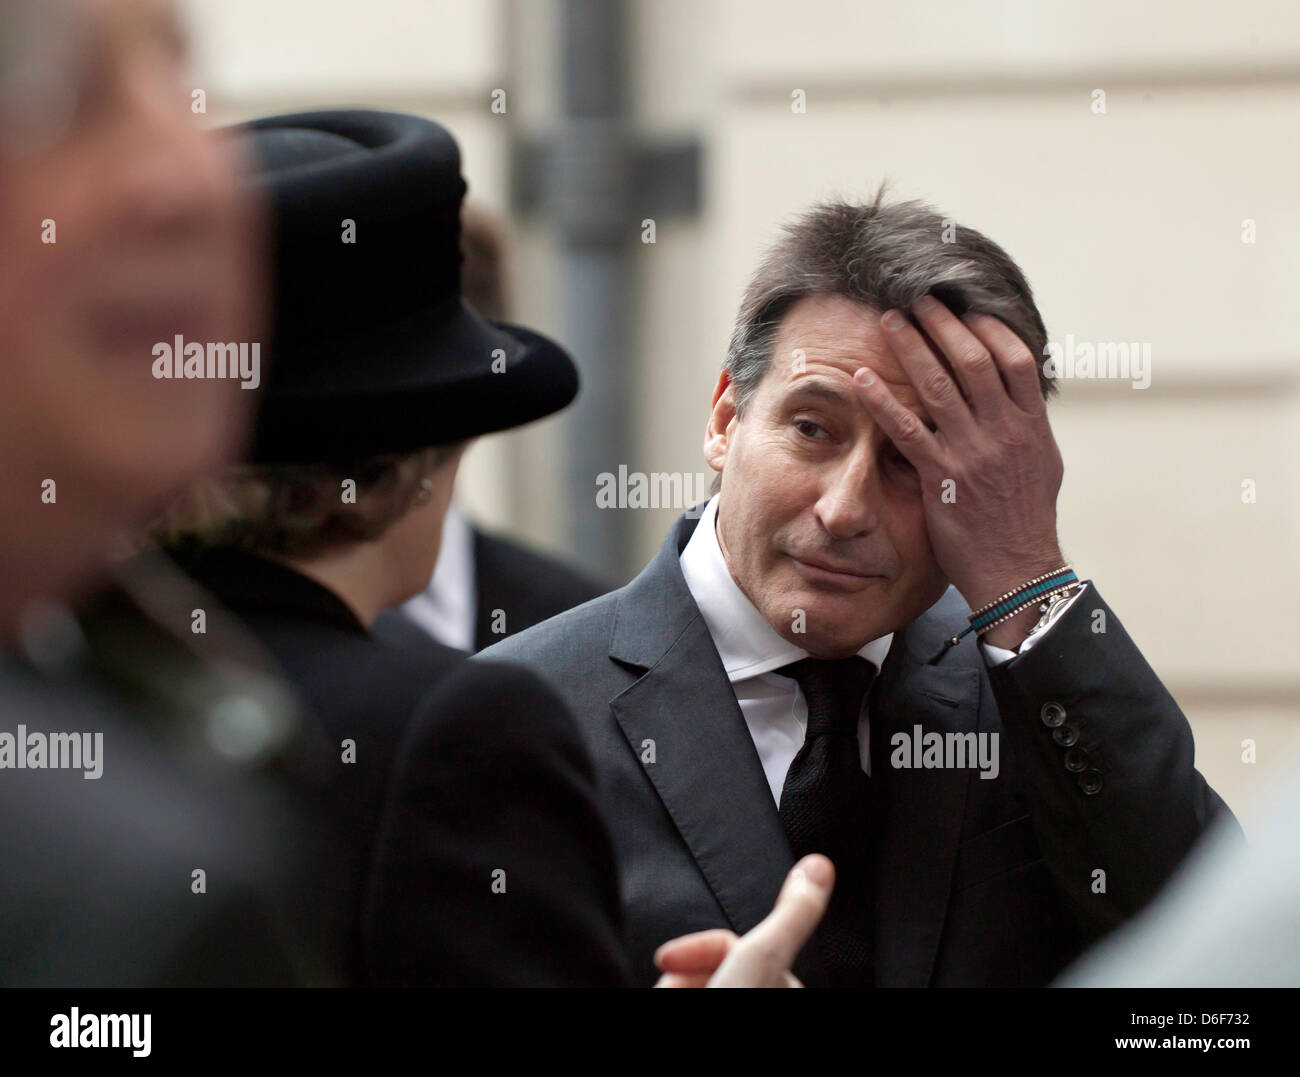 Lord Sebastian Coe waits to enter St Paul's Cathedral for Baroness Thatcher's funeral. - Stock Image